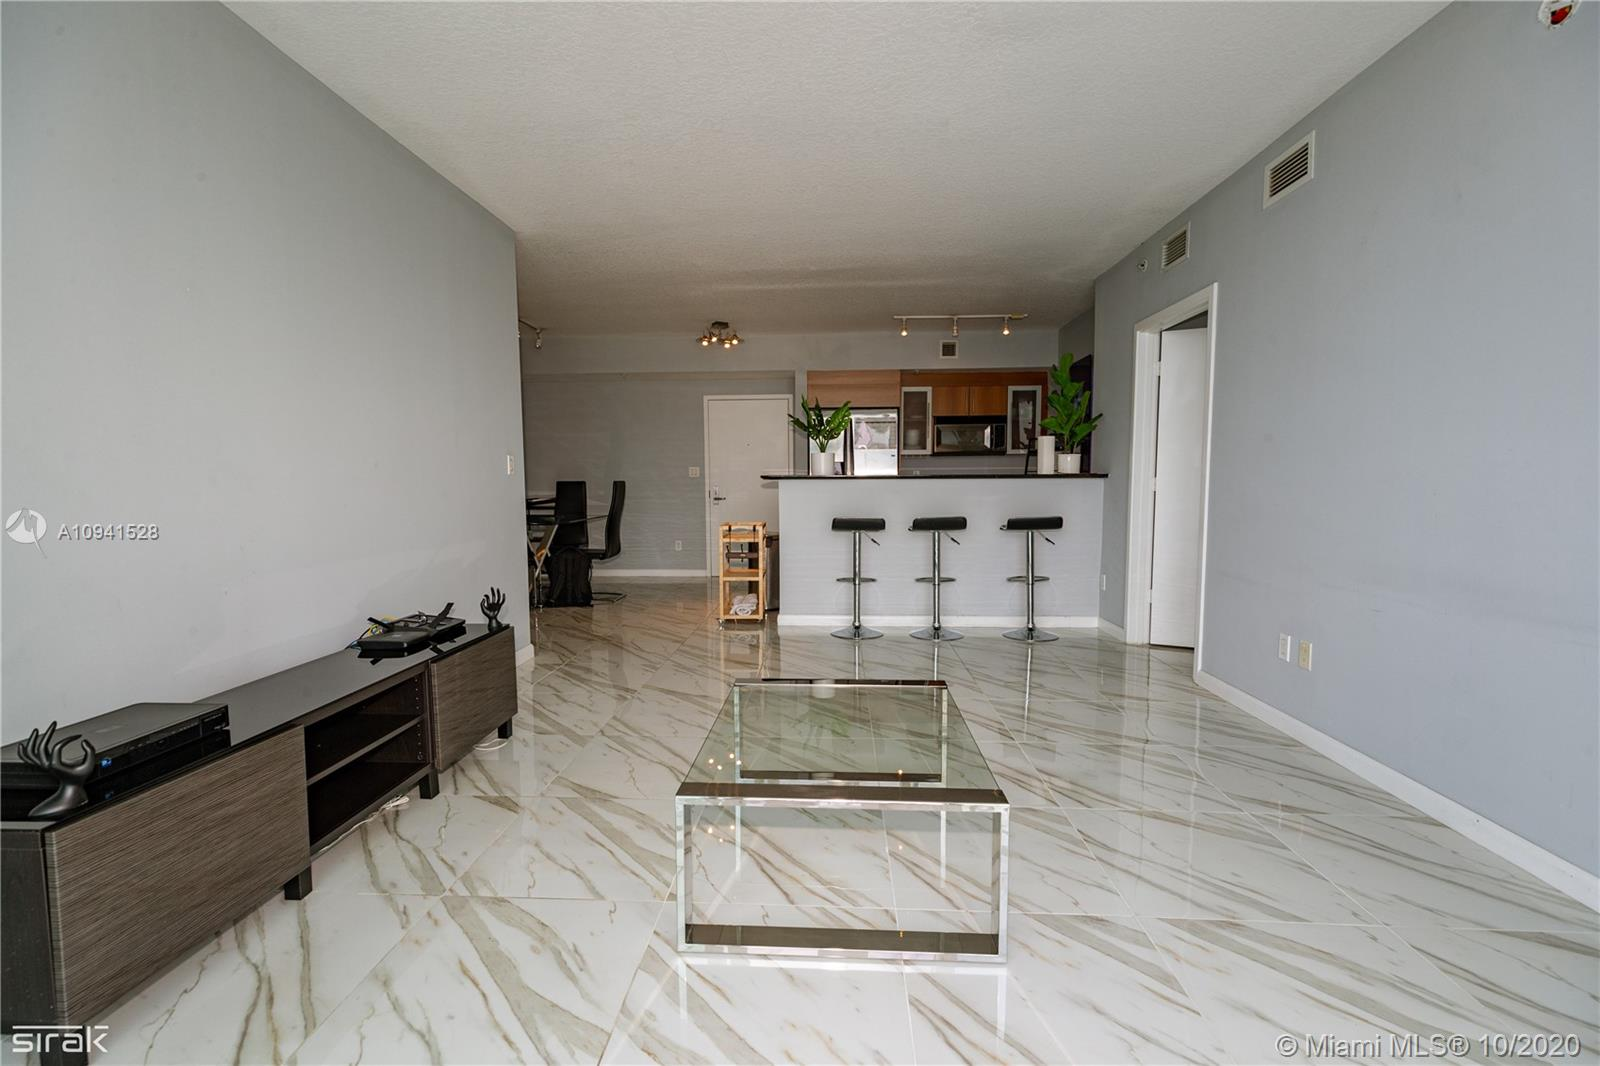 Beautiful 2 bedroom 2 bathroom split plan condo with views of Biscayne Bay, Port of Miami, and Downtown. Condo has Italian kitchen cabinets with stainless steel appliances, and marble bath countertops, with porcelain tile floors throughout. Condo amenities incl: 2 swimming pools, Jacuzzi, 2 Fitness Centers, 2 Party Rooms, Conf. Room, Convenience Store, and 24 hrs Security, Valet, and Concierge. Centrally located within minutes of SoBe, Grove, Gables, Design District and Airport.